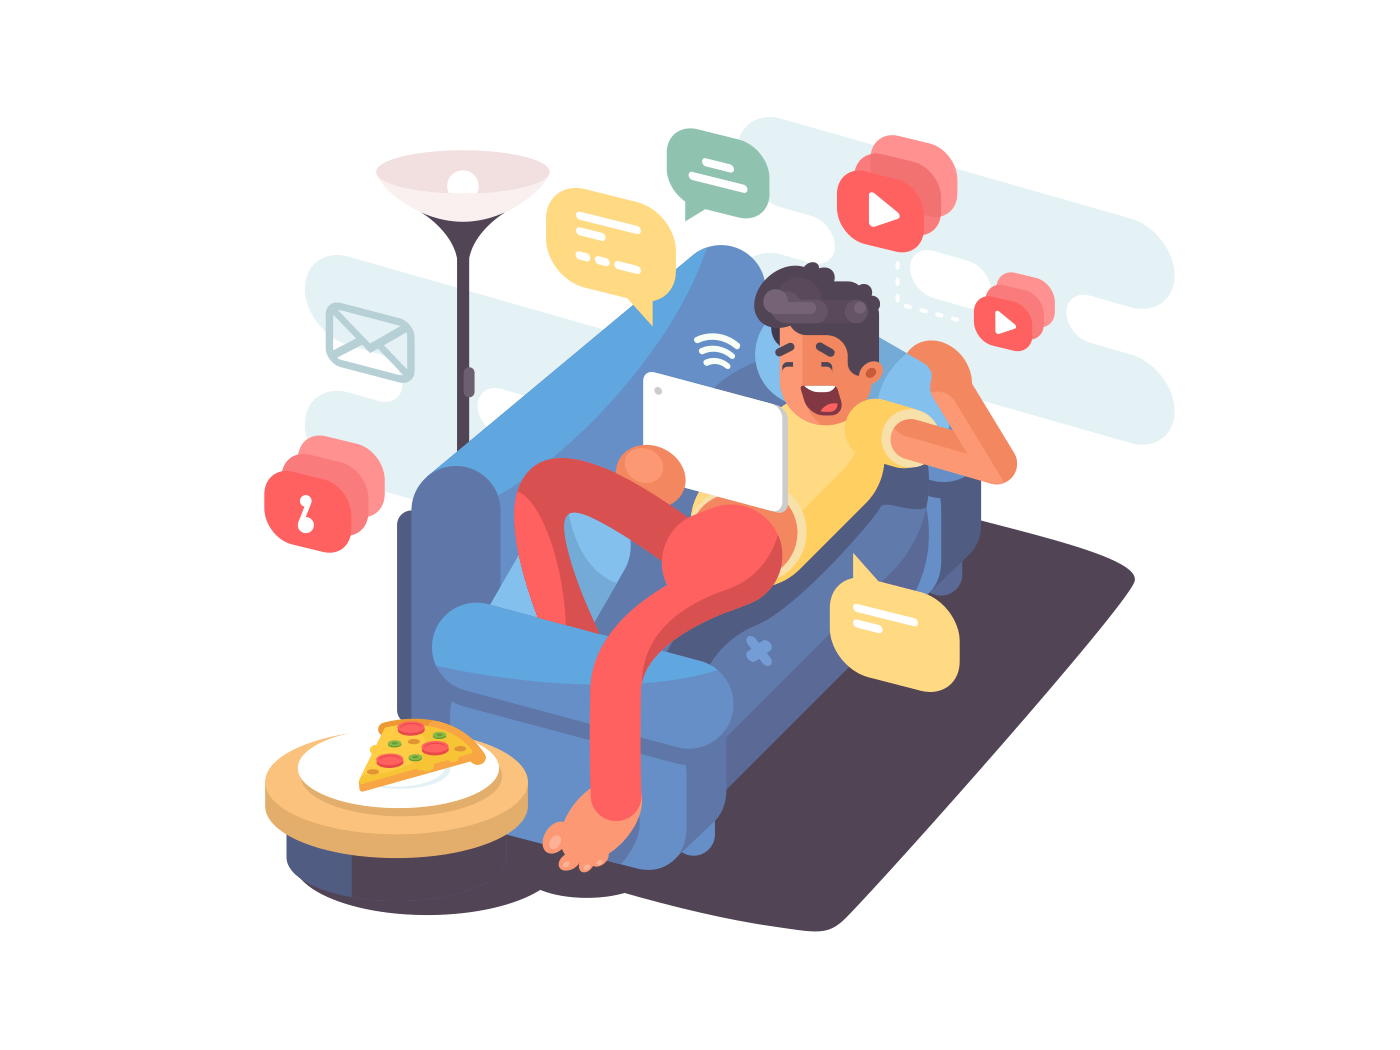 Man lying on couch with tablet illustration